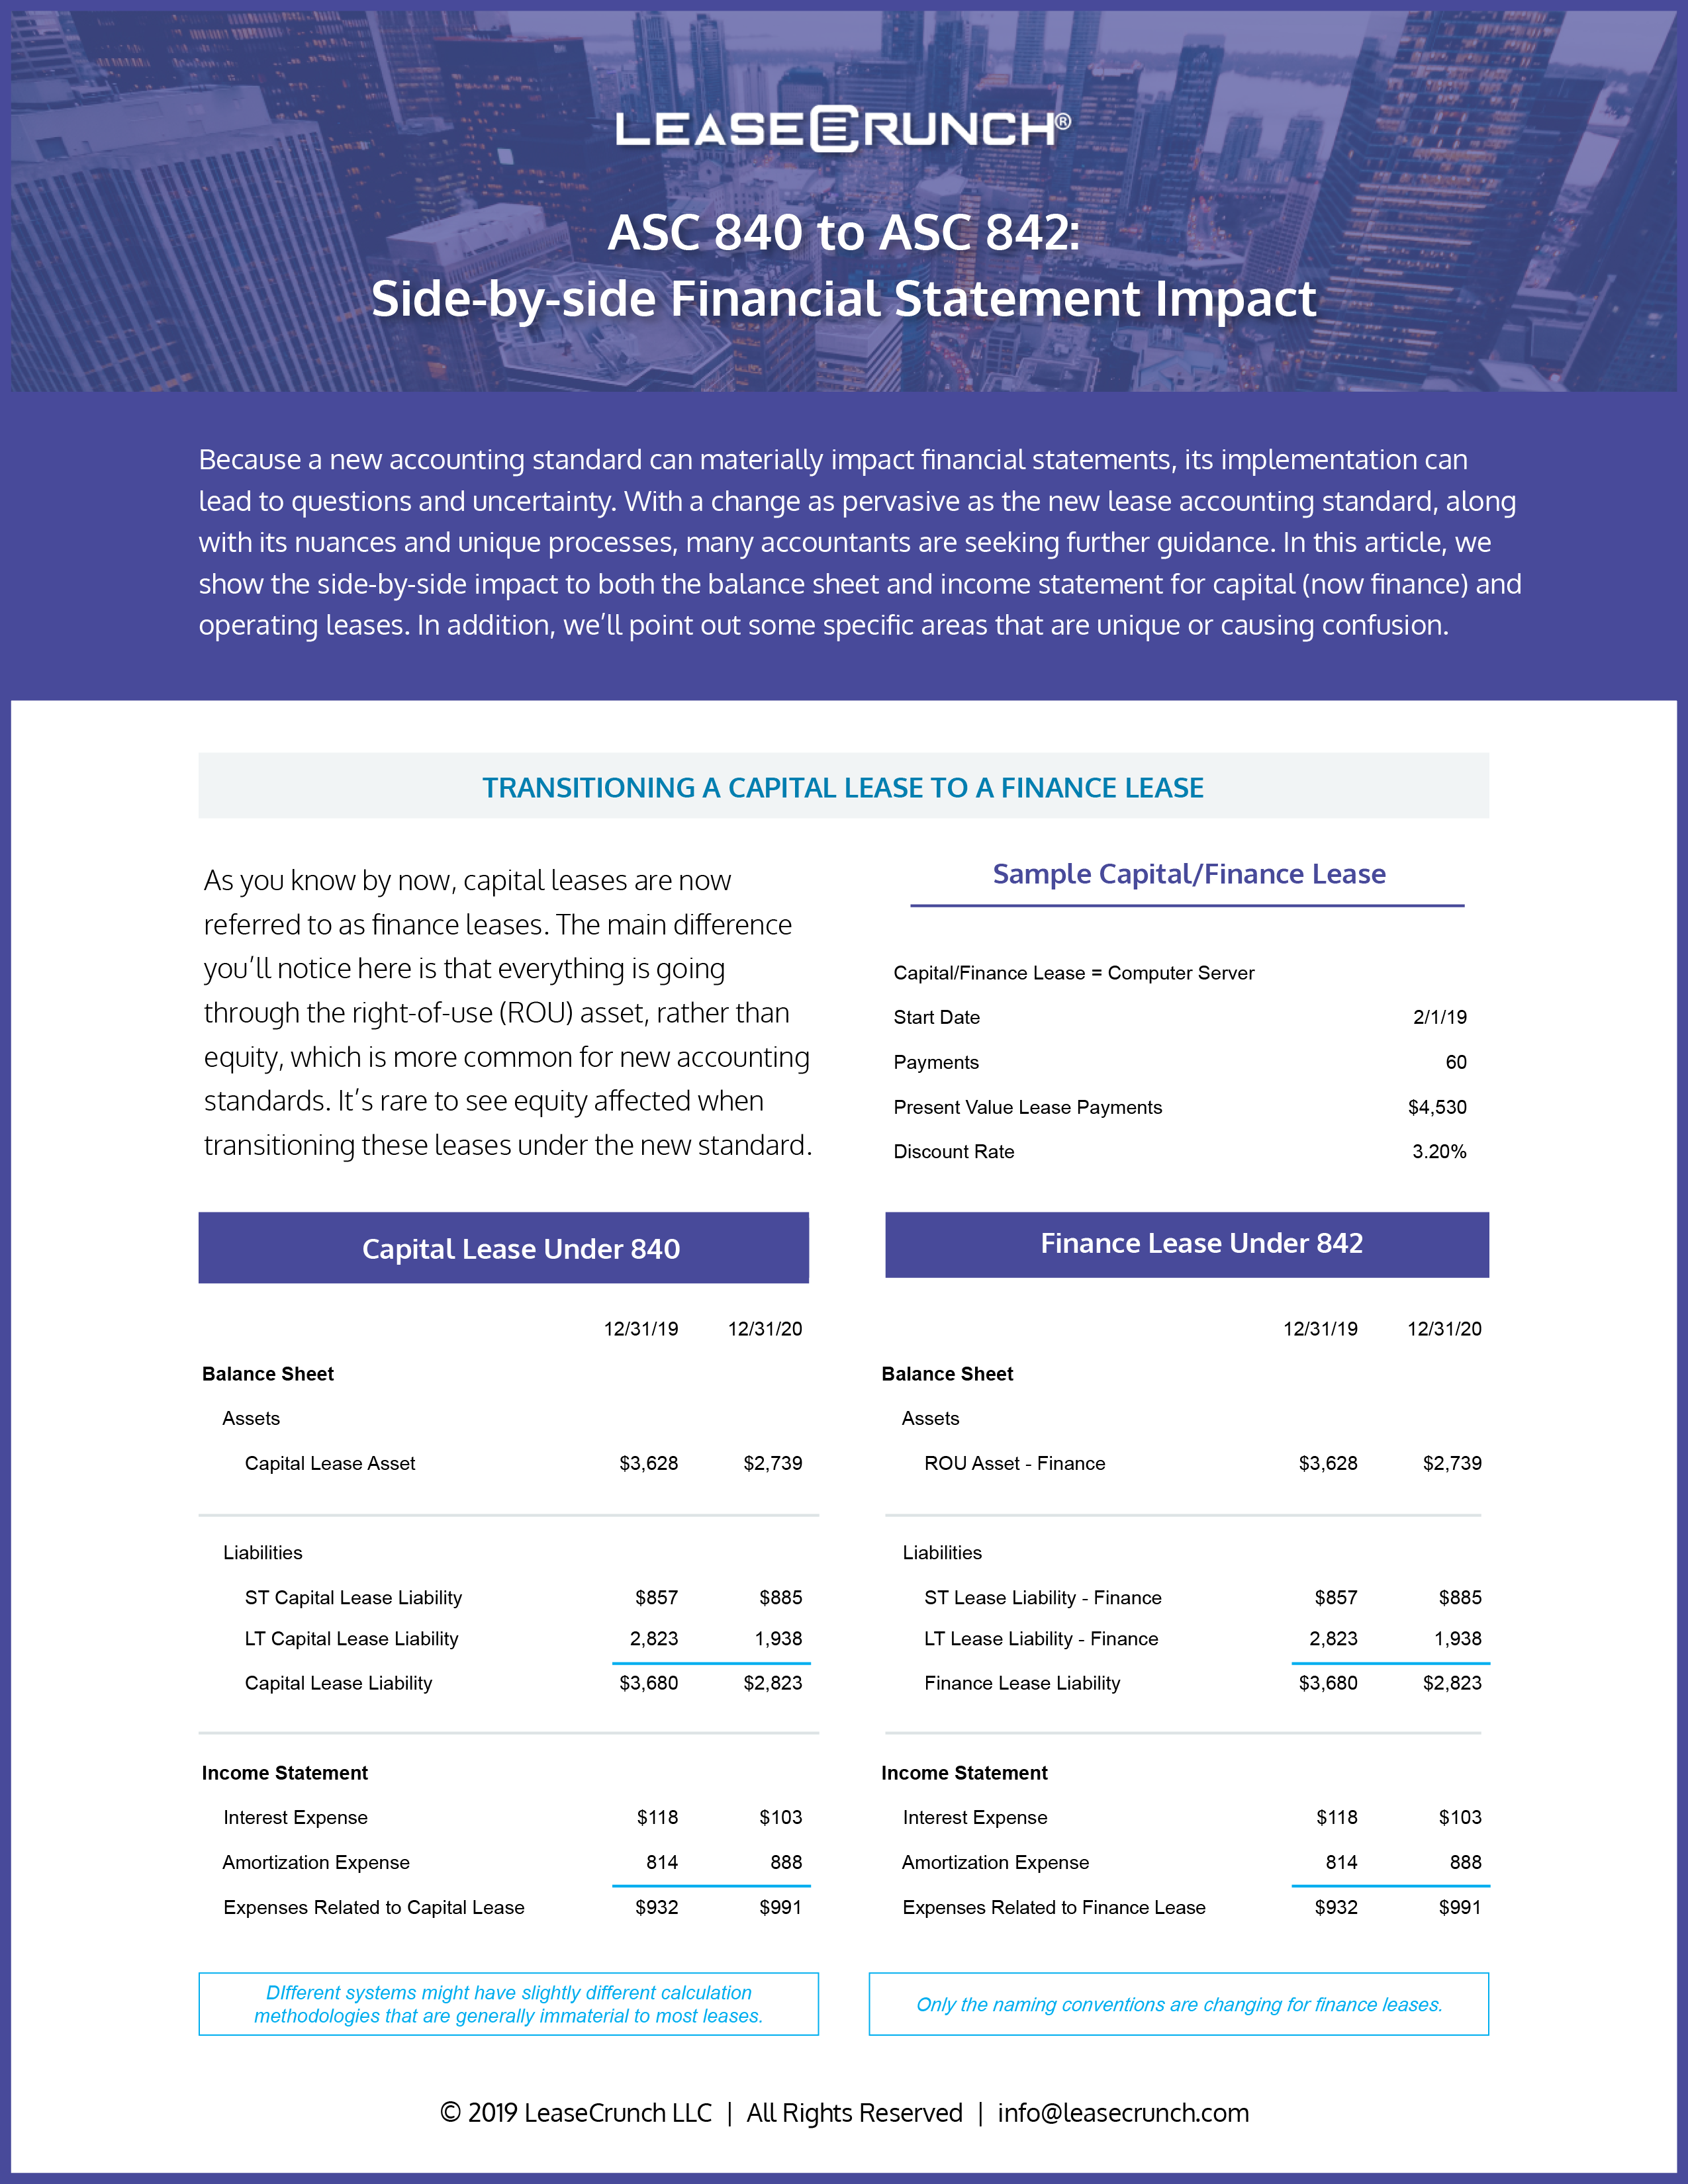 Side-by-side Financial Statement Impact